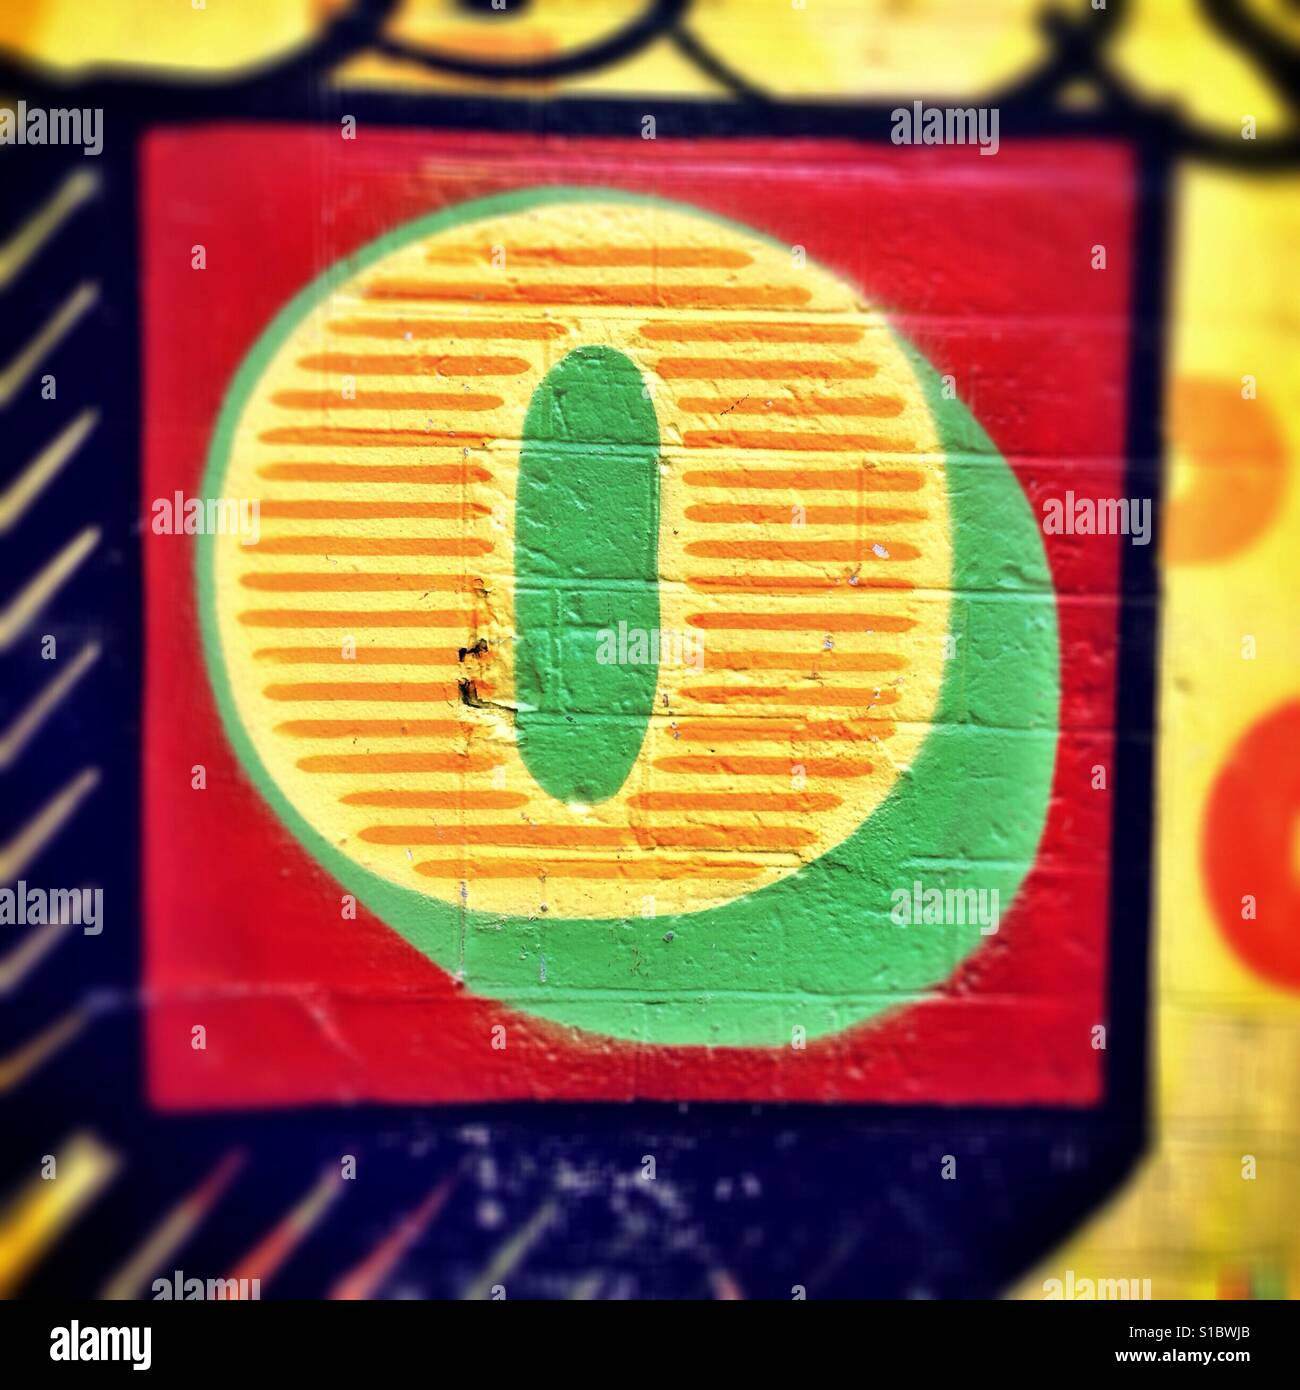 Detail from graffiti art by street artist Ben Eine, showing a colourful, stylised letter O. - Stock Image